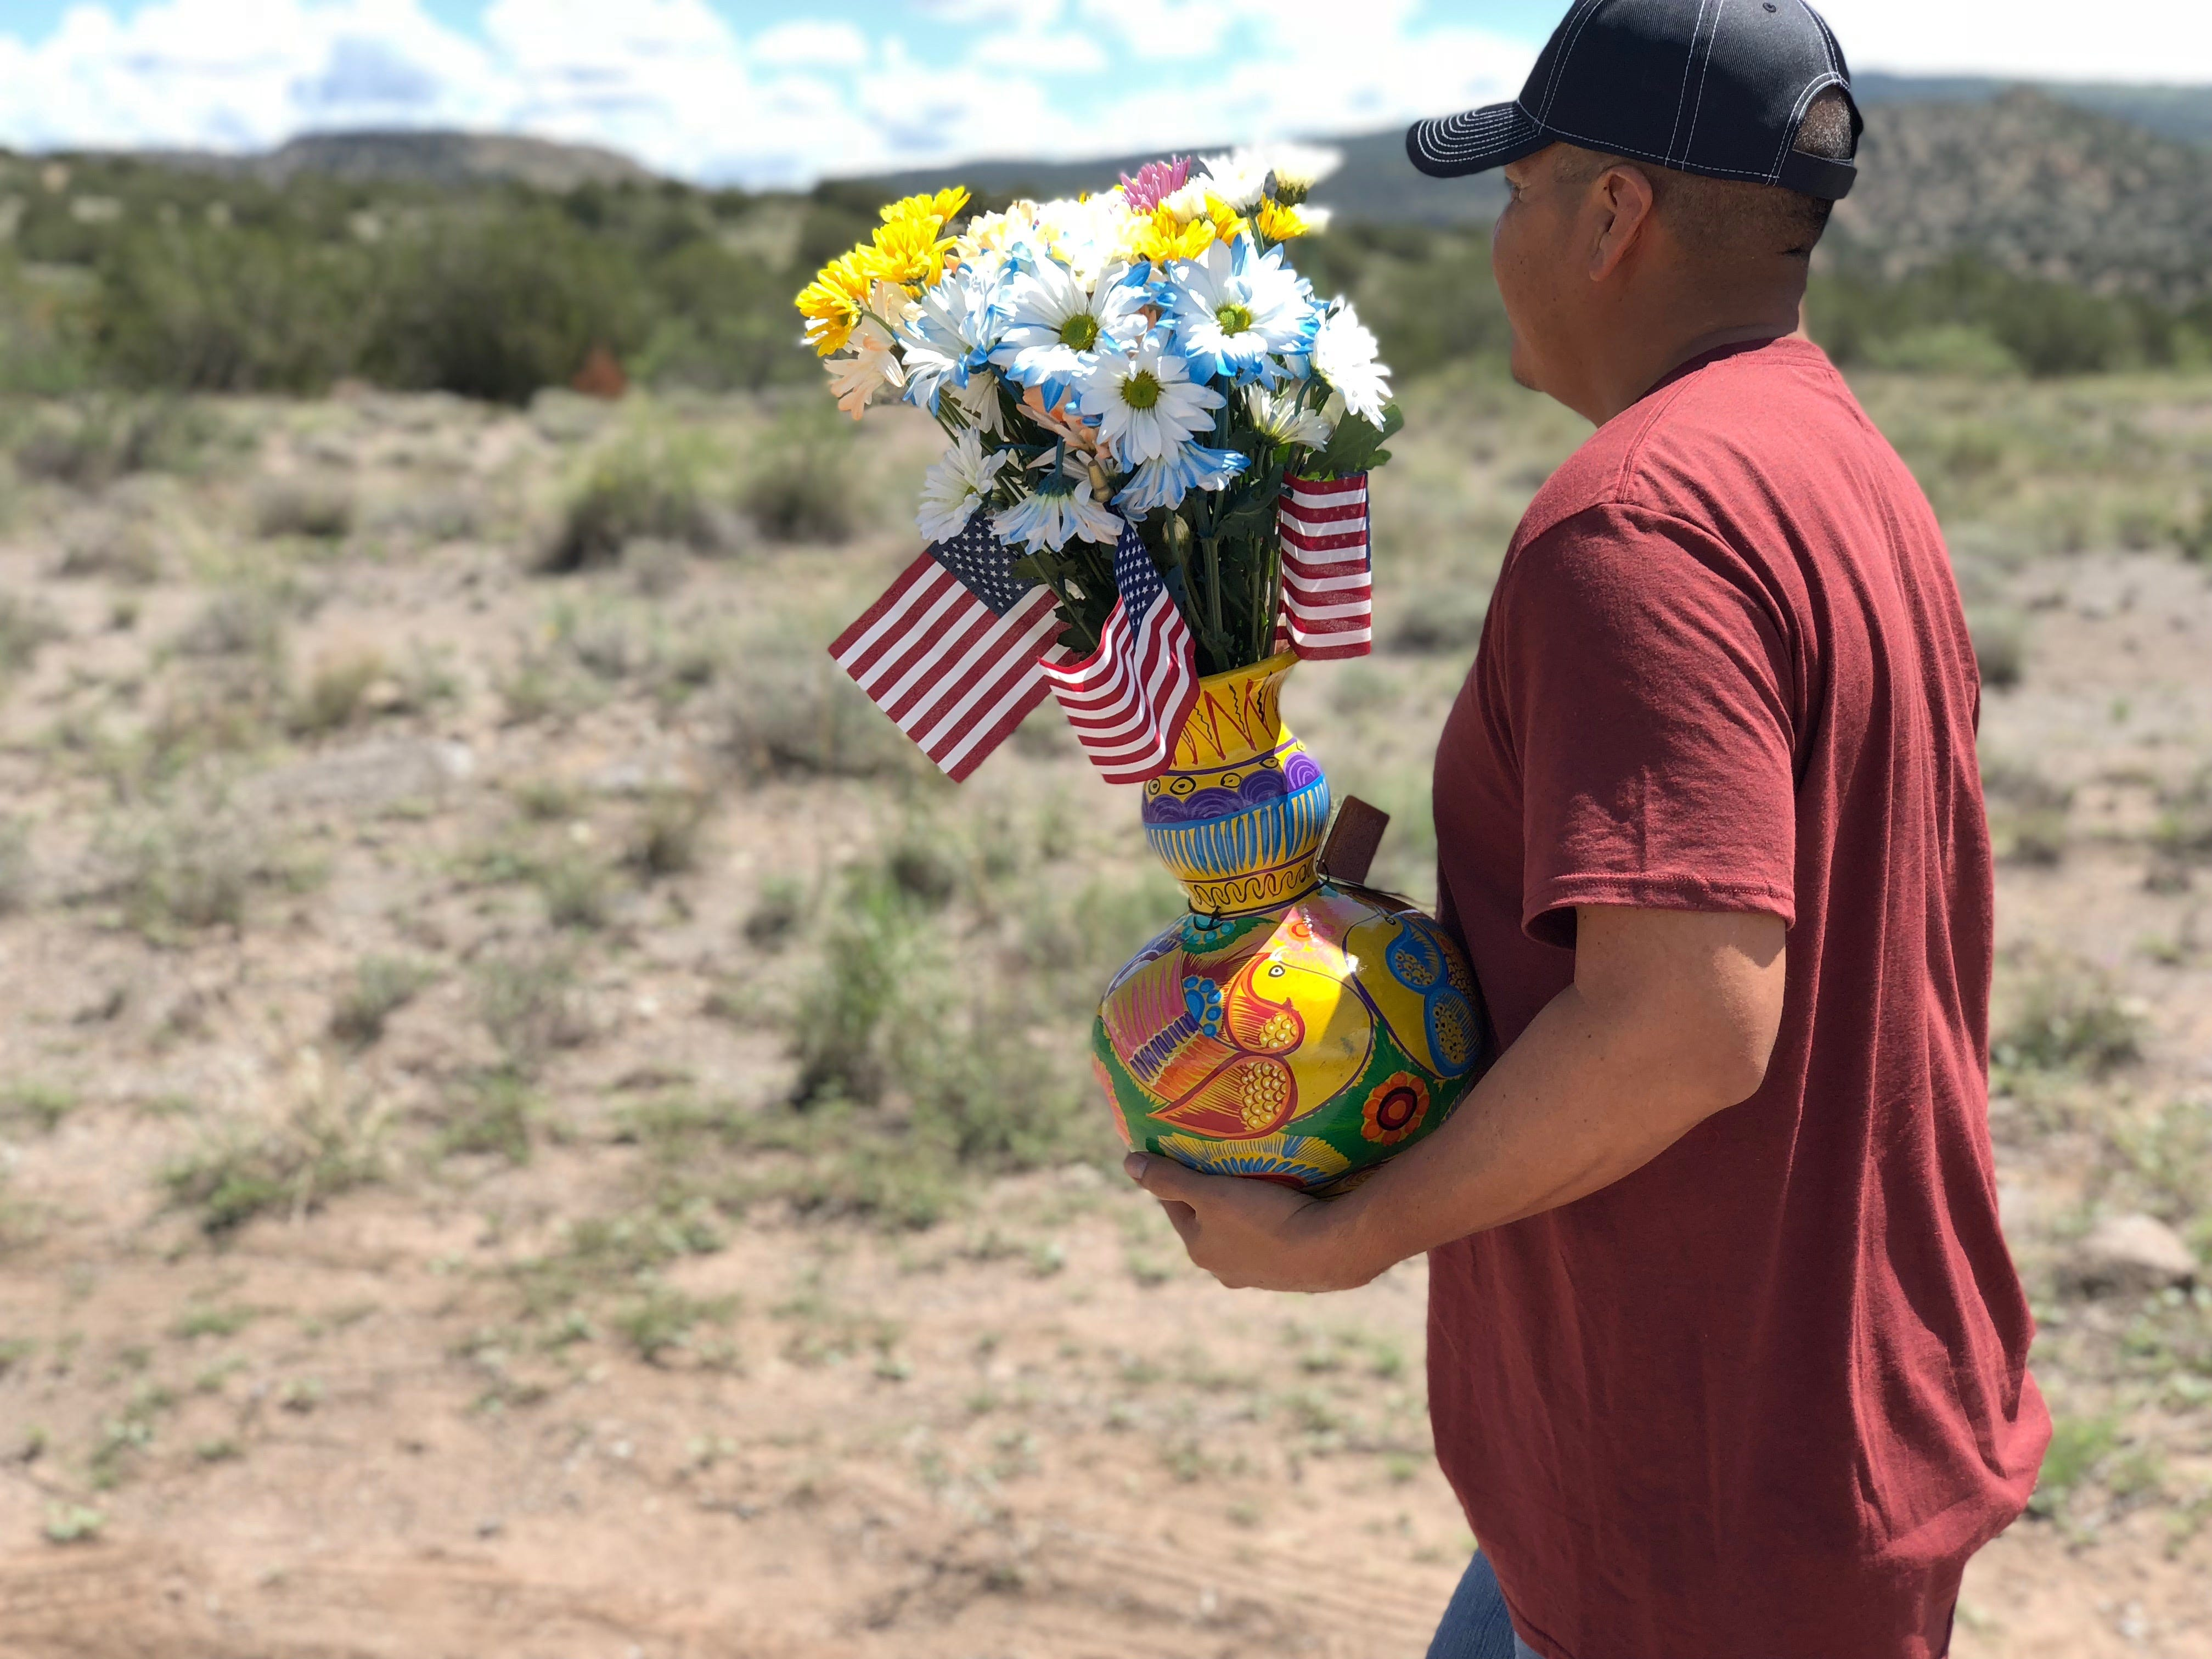 Luis Aniceto, 43, drove from Phoenix to a memorial near Sen. John McCain's ranch Sunday morning to pay respect and leave flowers.